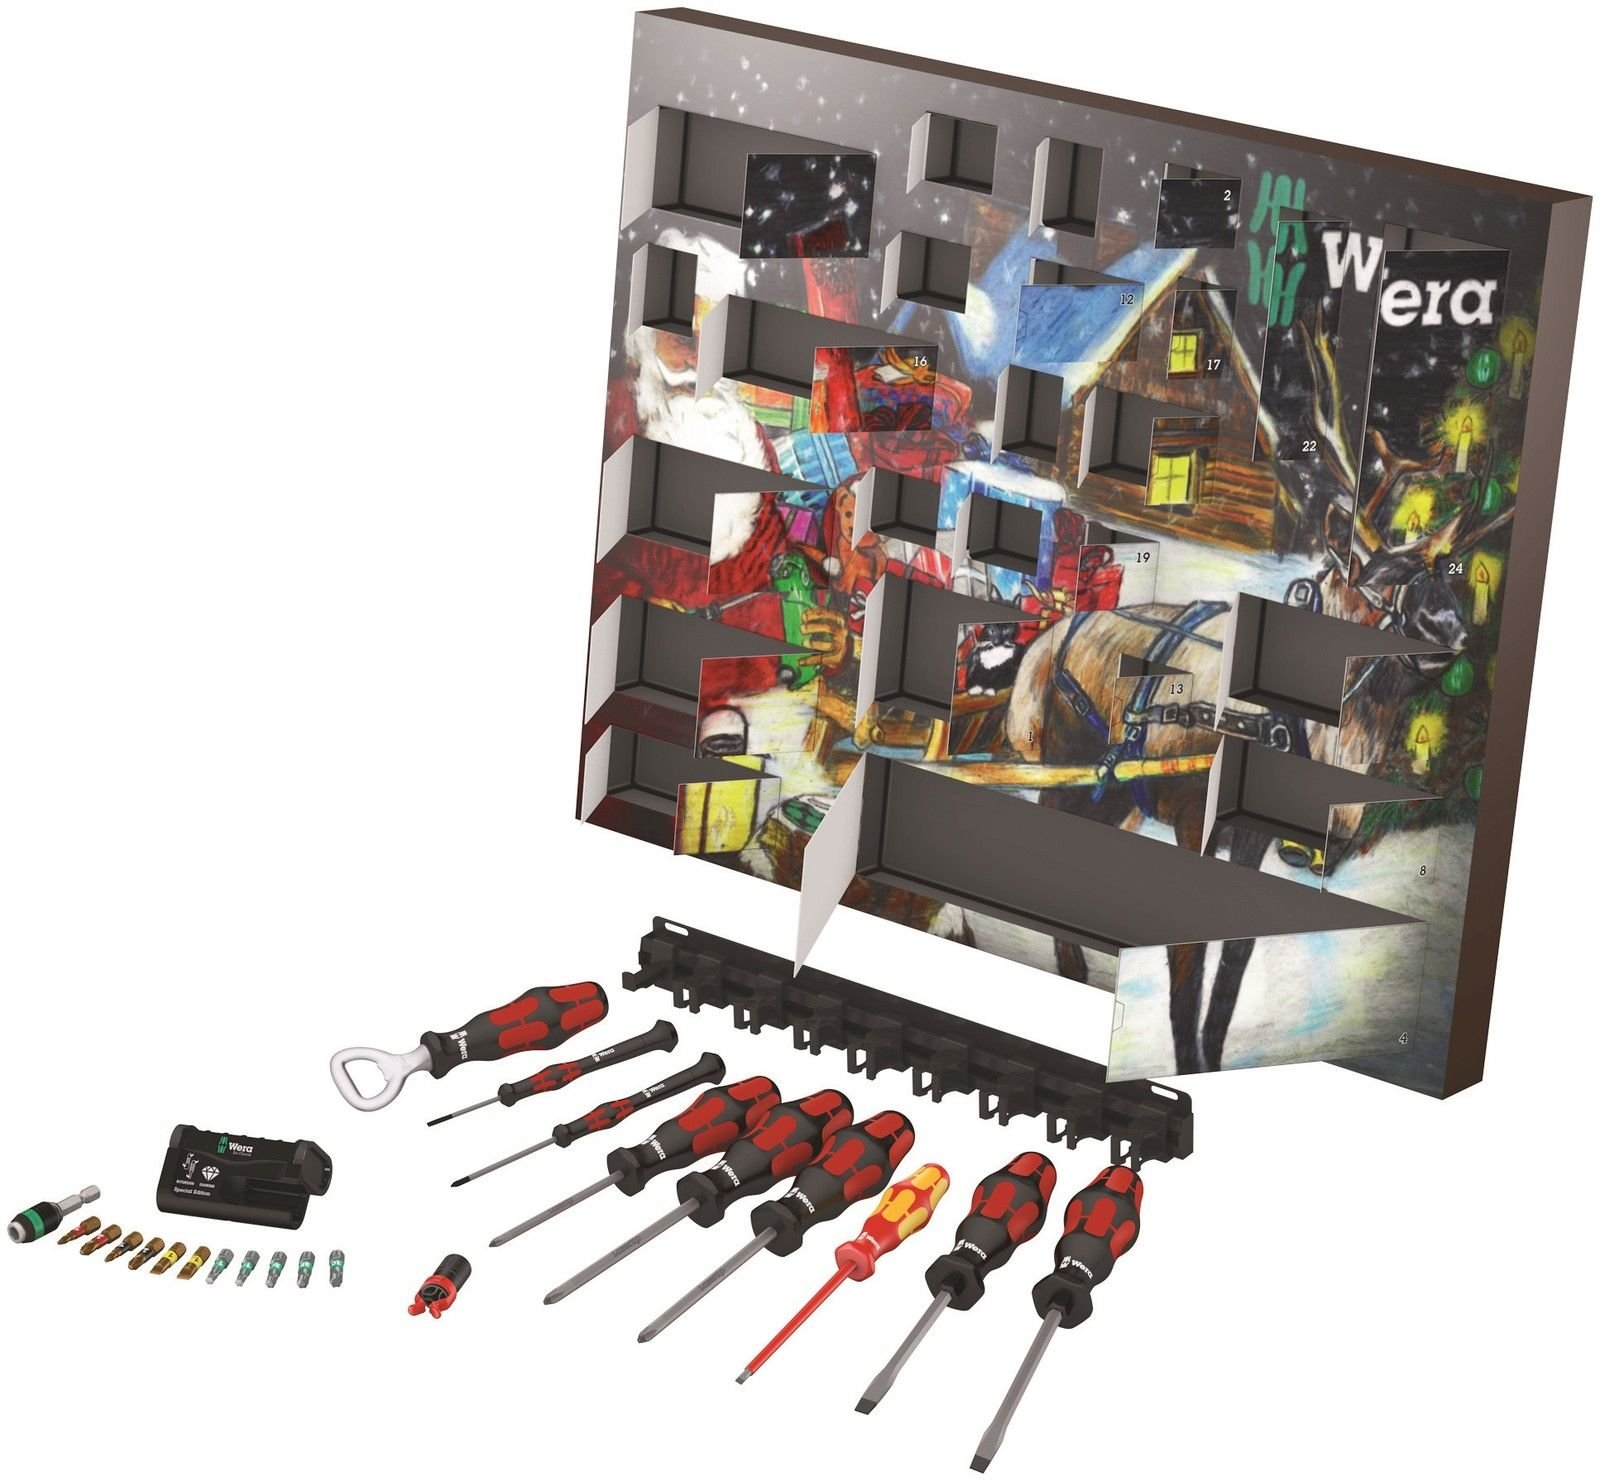 wera-tools-advent-calendar